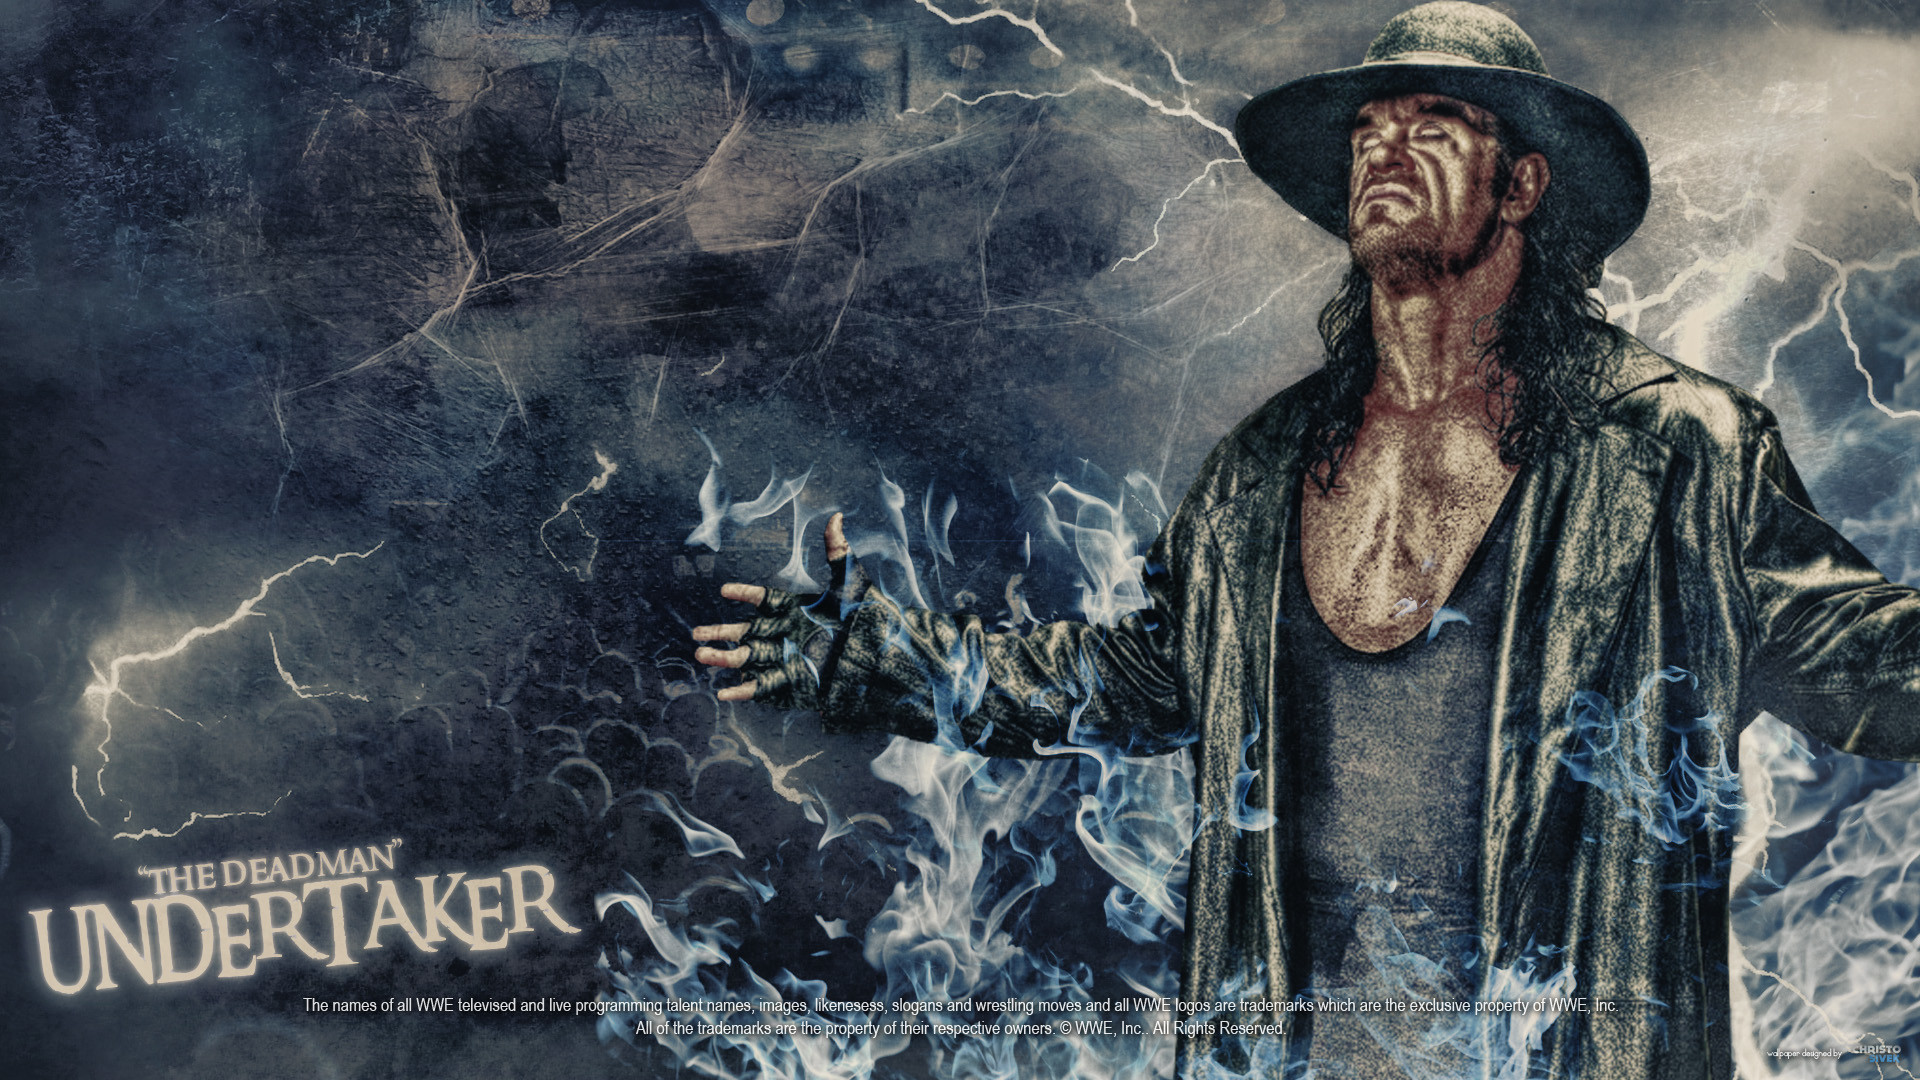 Undertaker Wallpaper HD 1